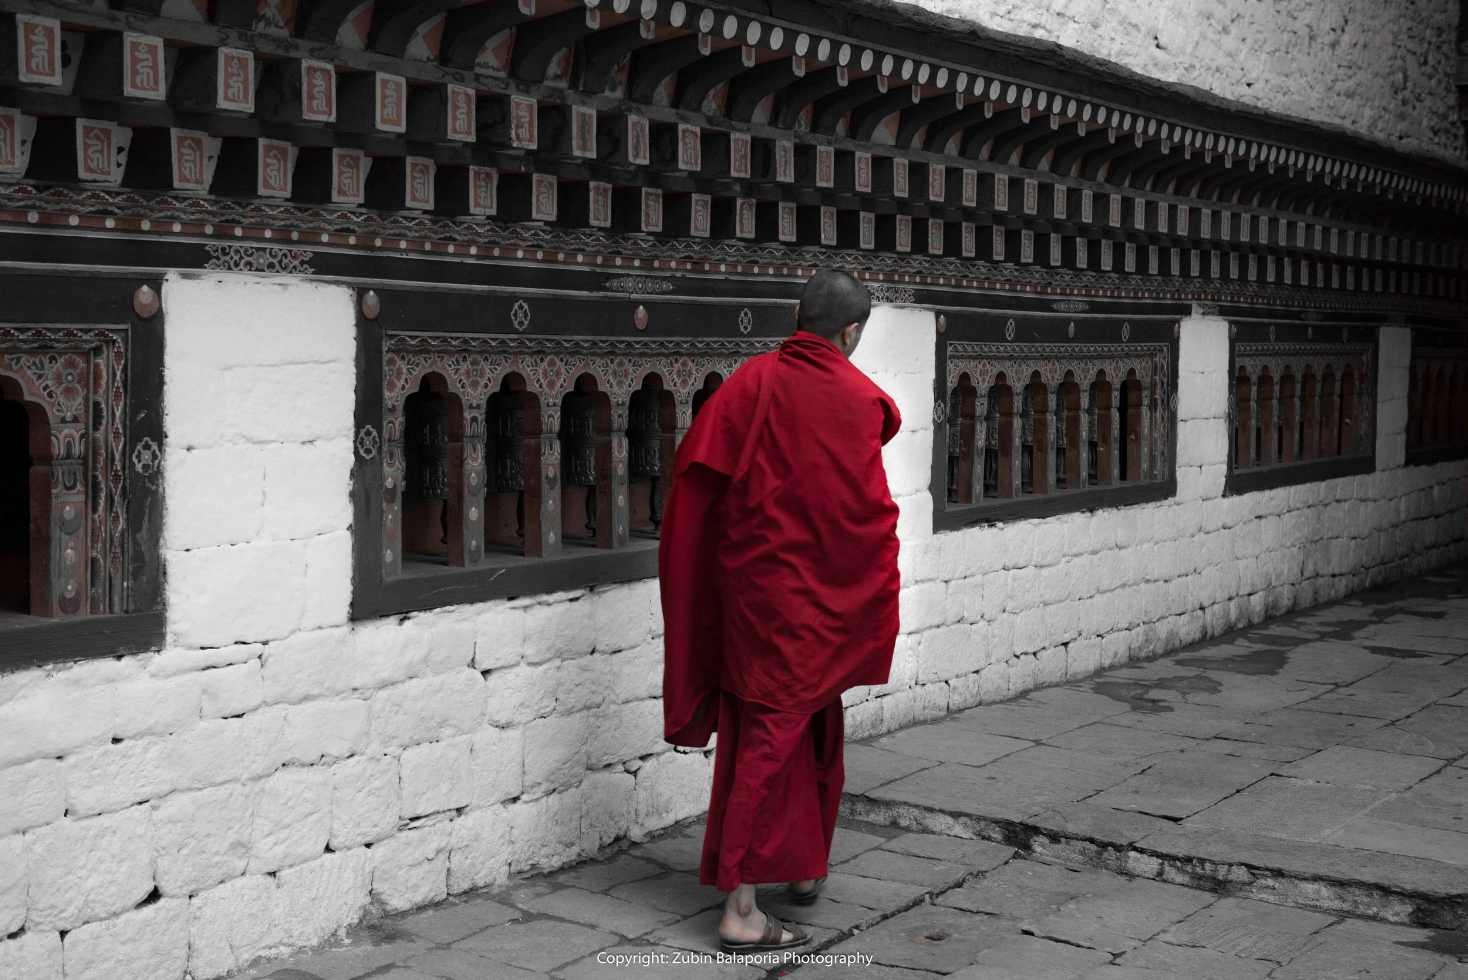 The Red Monk